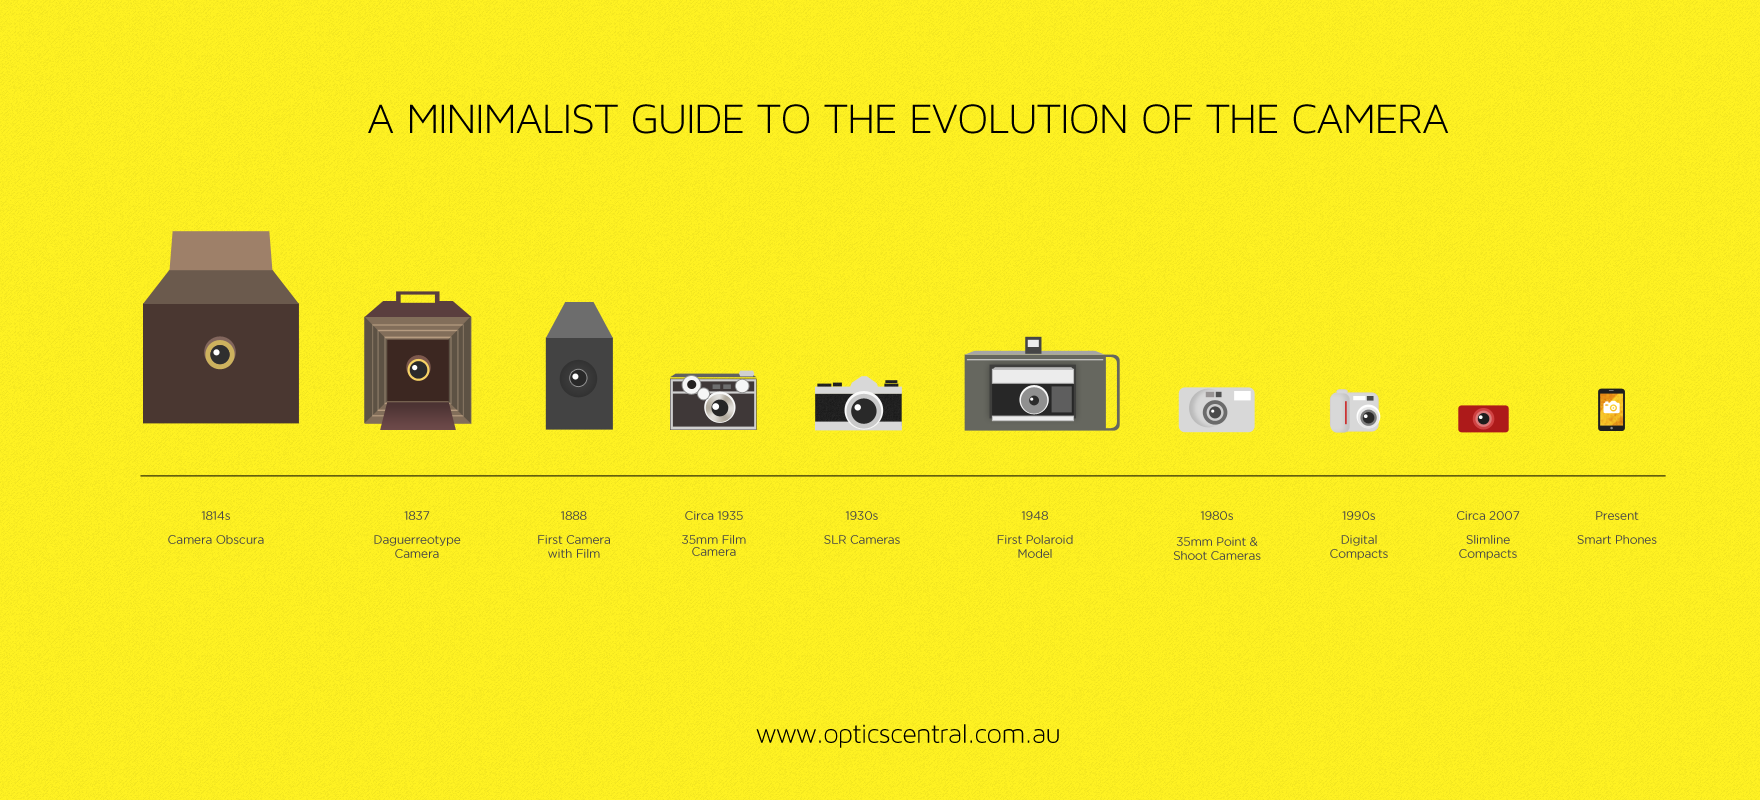 a-minimalist-guide-to-the-evolution-of-the-camera_512b00ed6e73f